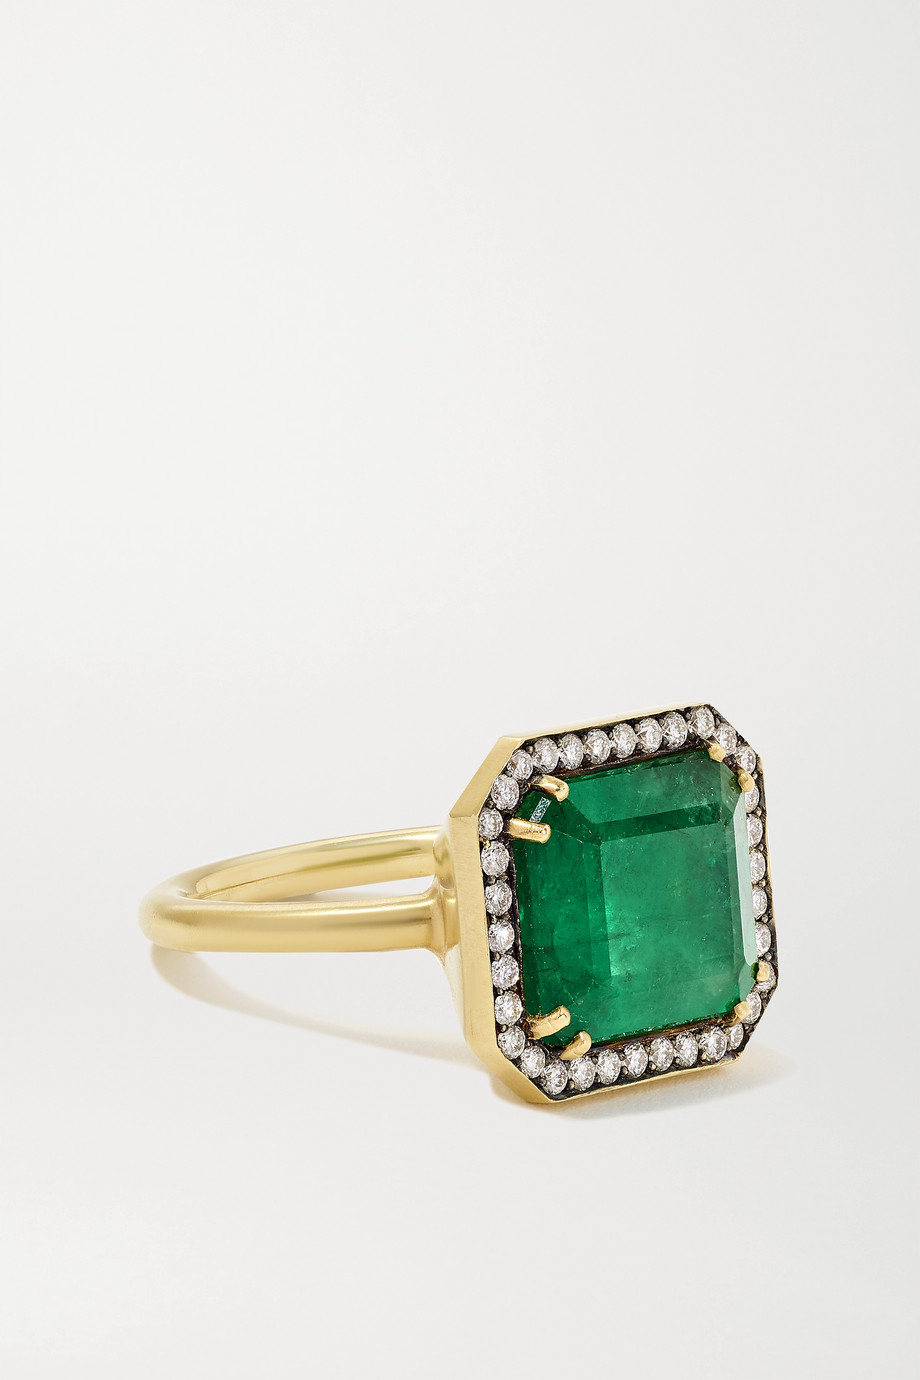 Sylva & Cie 18-karat gold, emerald and diamond ring